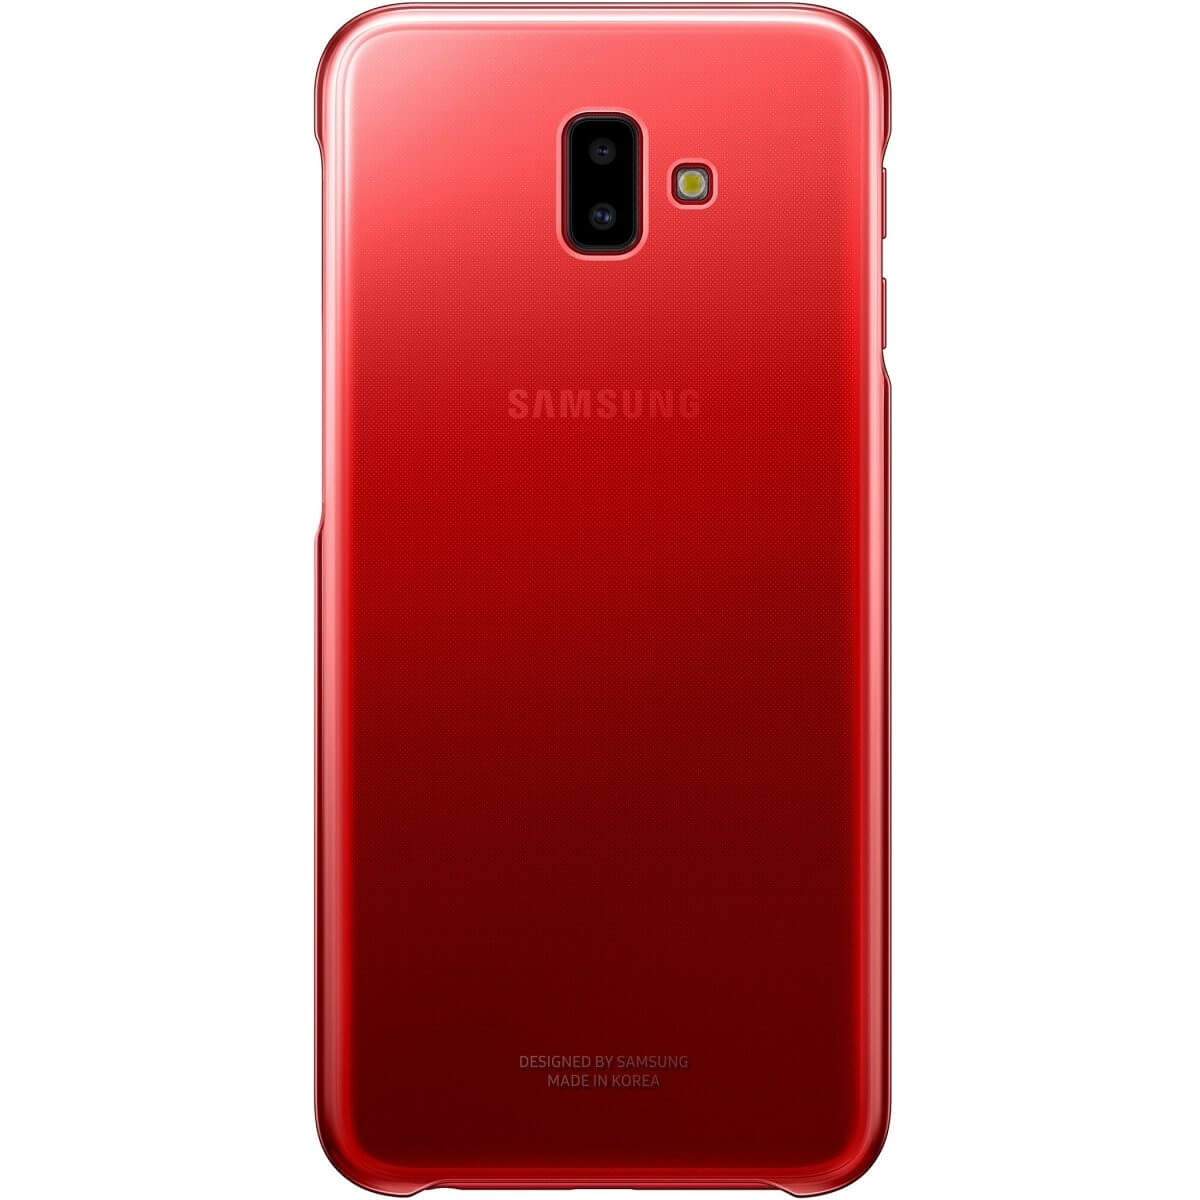 official photos 935db 17263 Images of Samsung's gradient covers for Galaxy J4+, J6+ and A7 ...